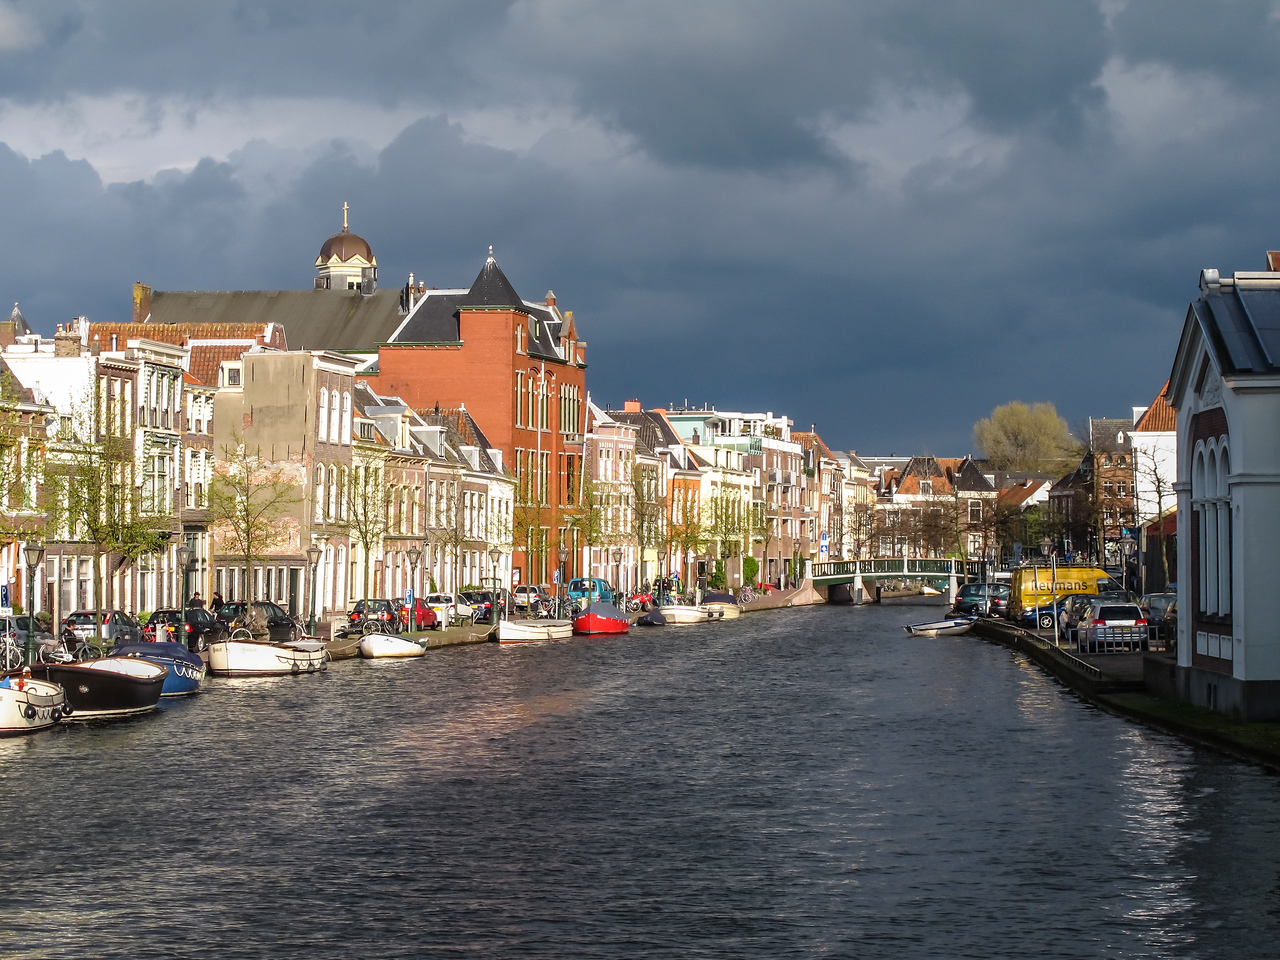 We had many gray (and rainy) days, but that didn't dampen our spirits at all!  We enjoyed an interesting sky our first night out when we arrived in Leiden.